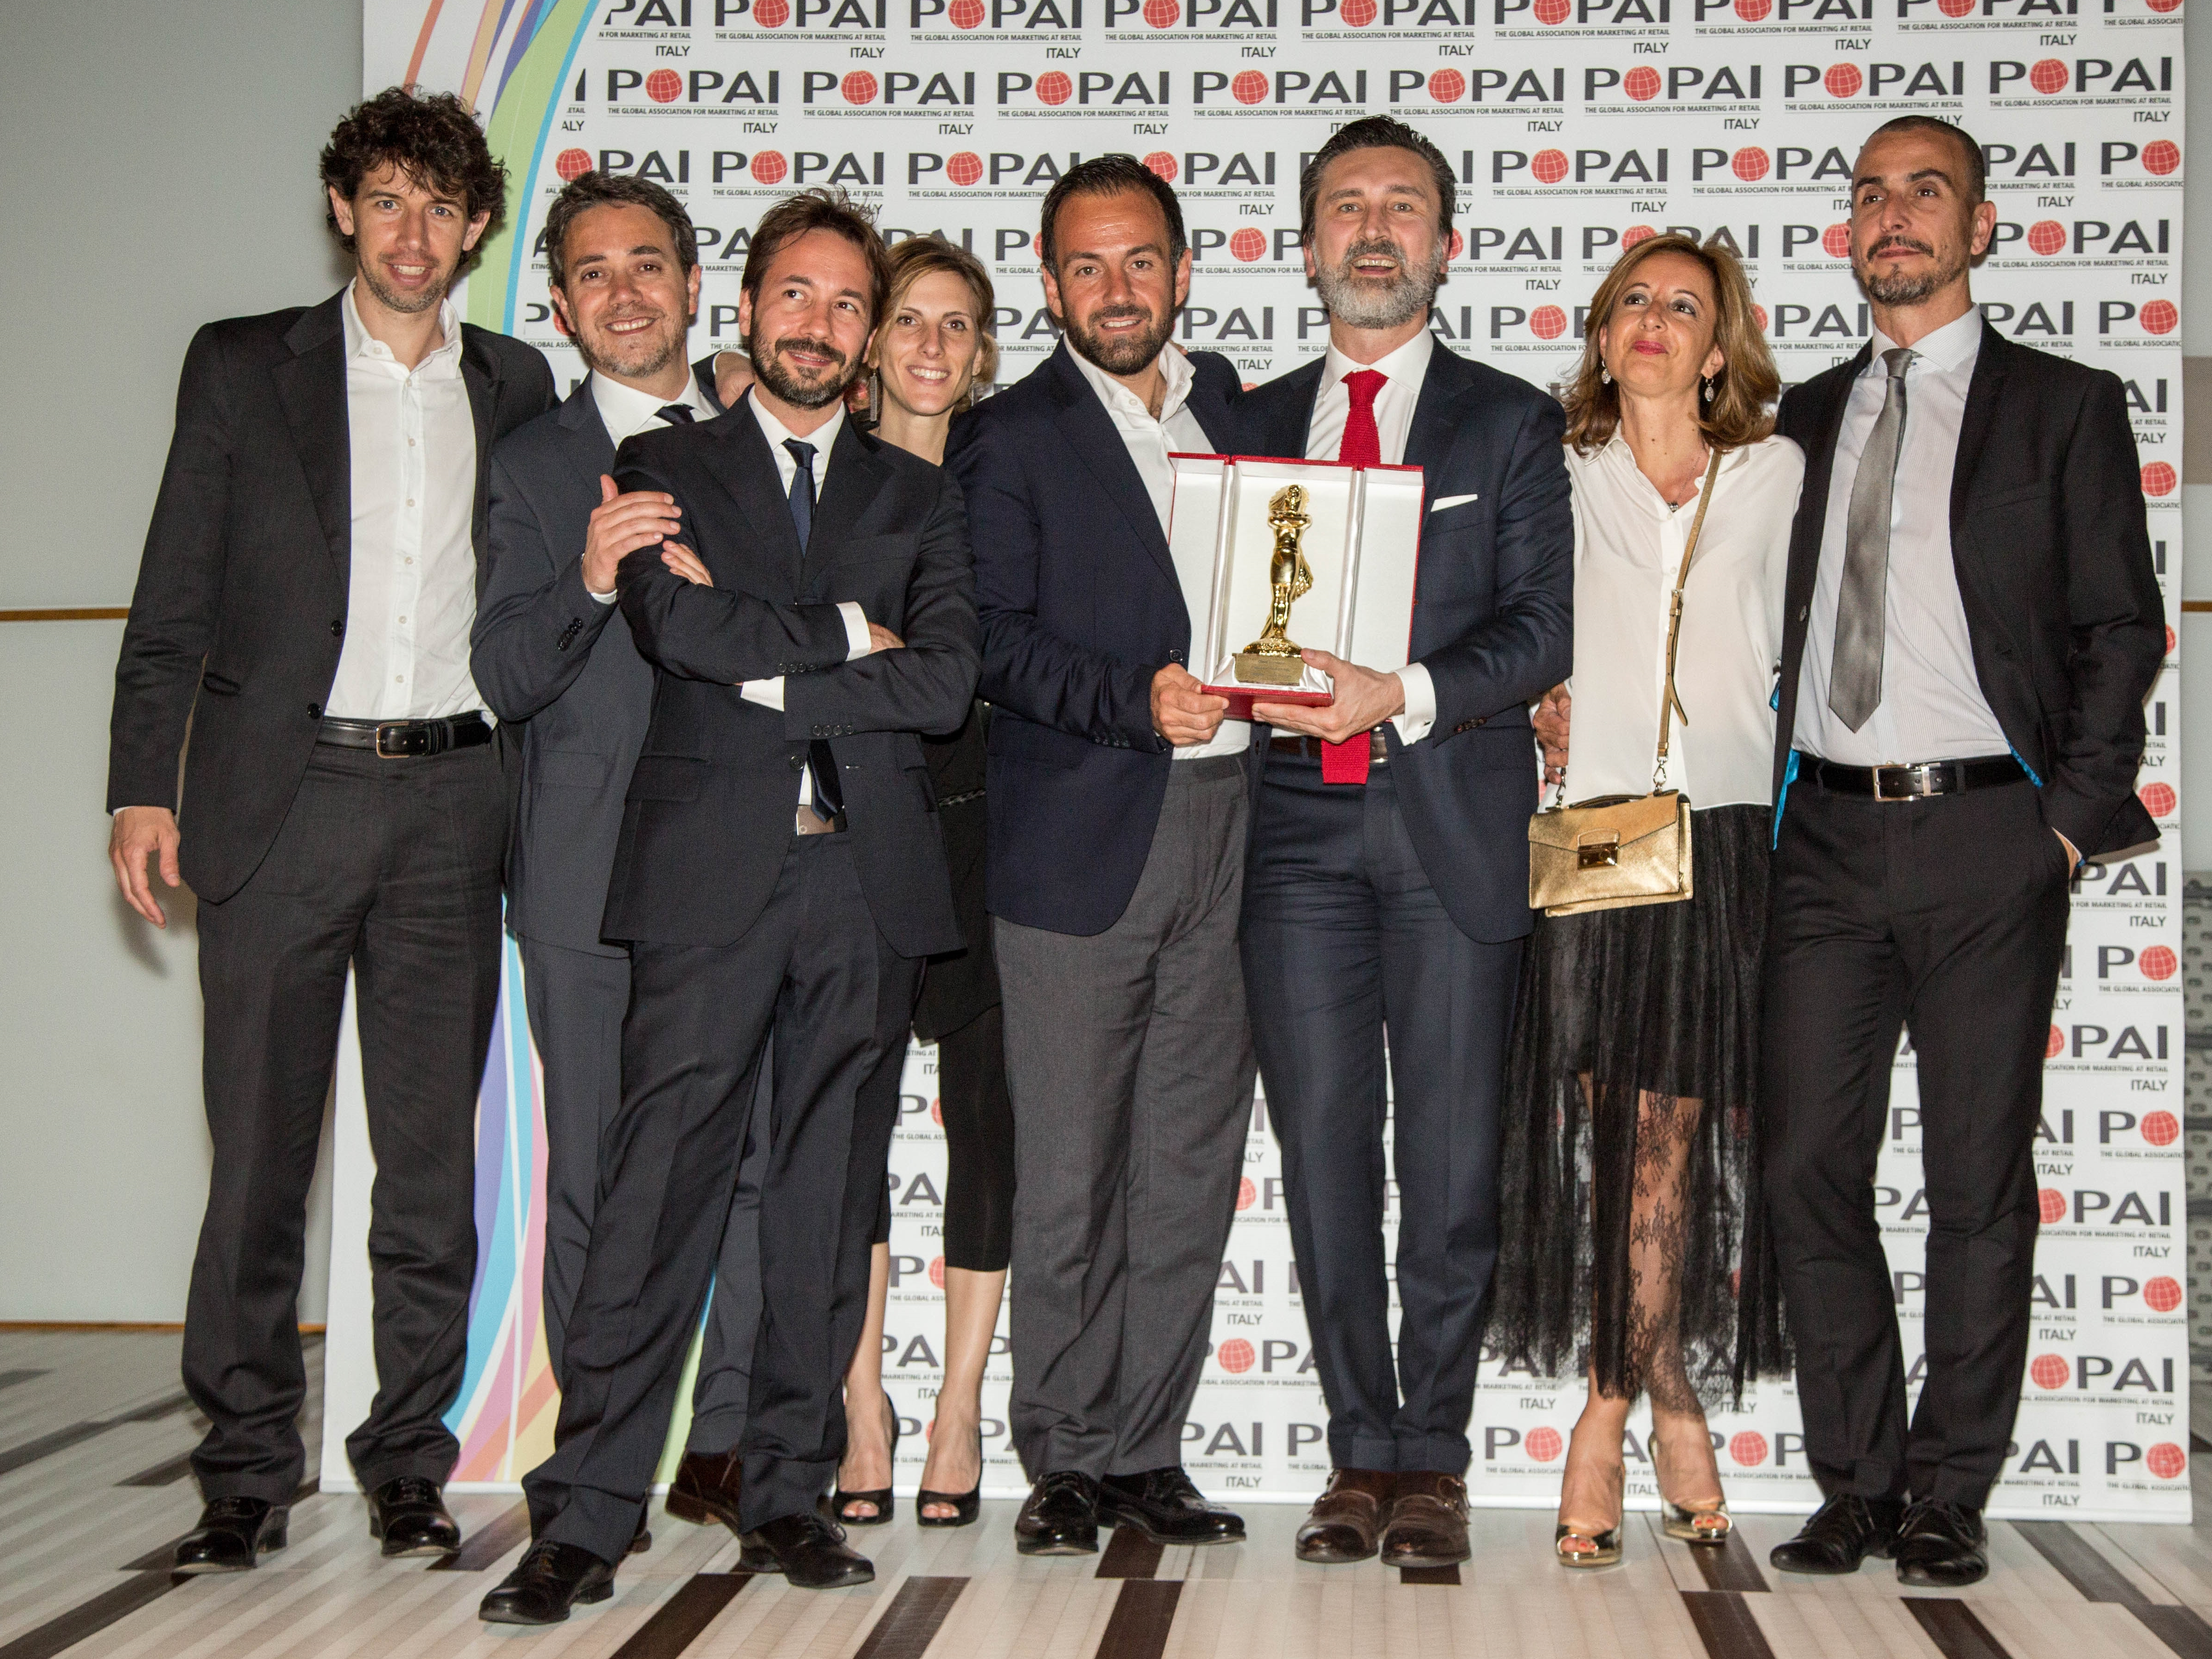 https://www.promotionmagazine.it/wp/wp-content/uploads/2016/06/PAYBACK_premiazione_Popai.jpg